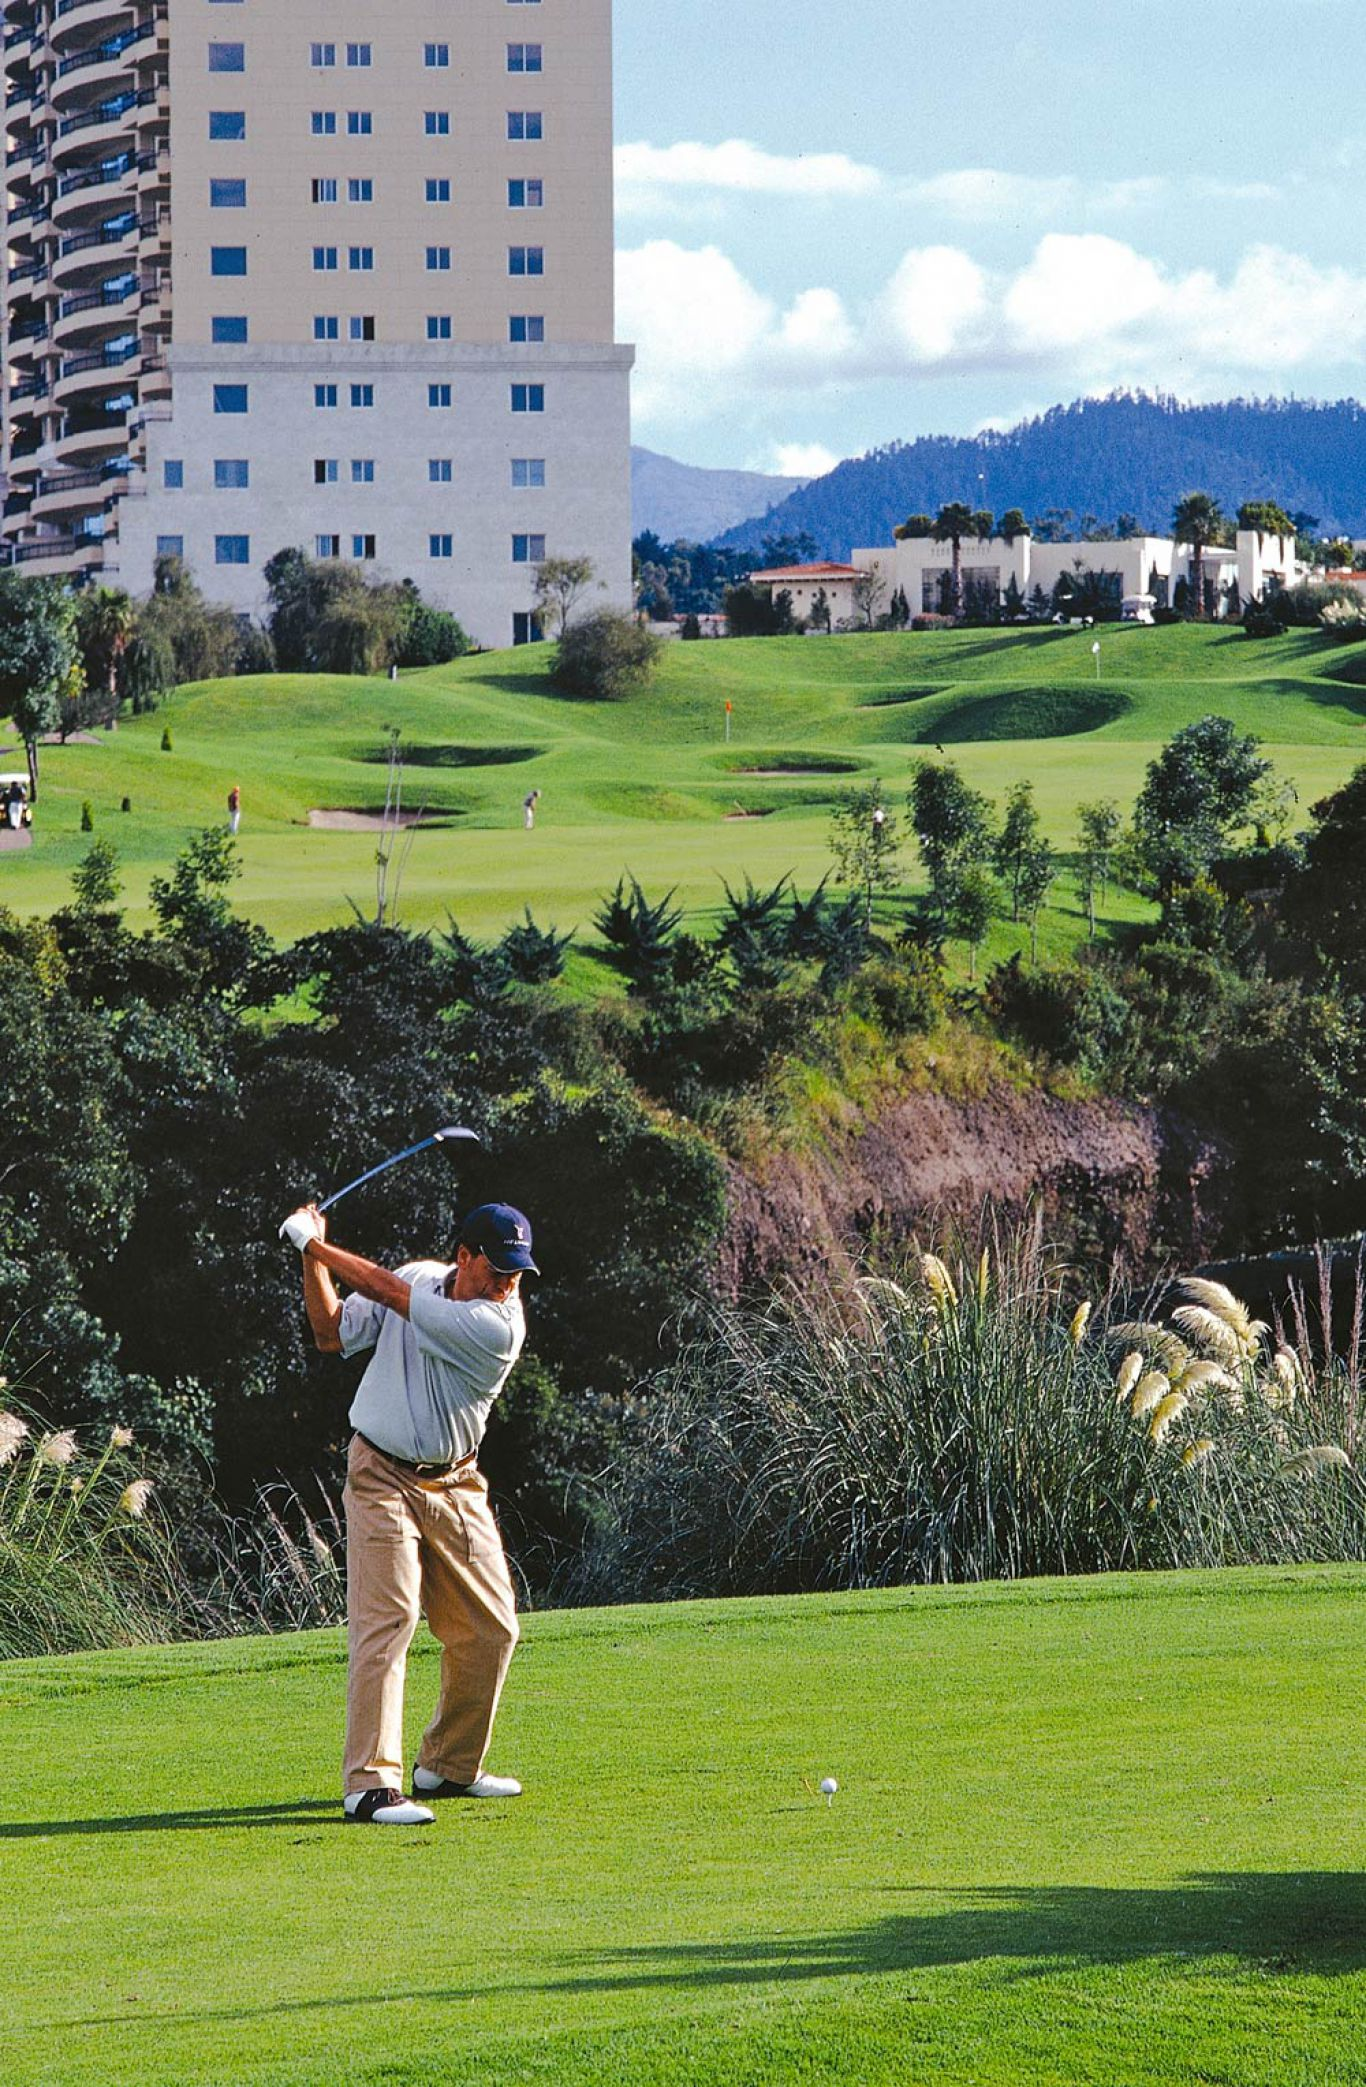 Id 1510653, club de golf bosques, no 1,